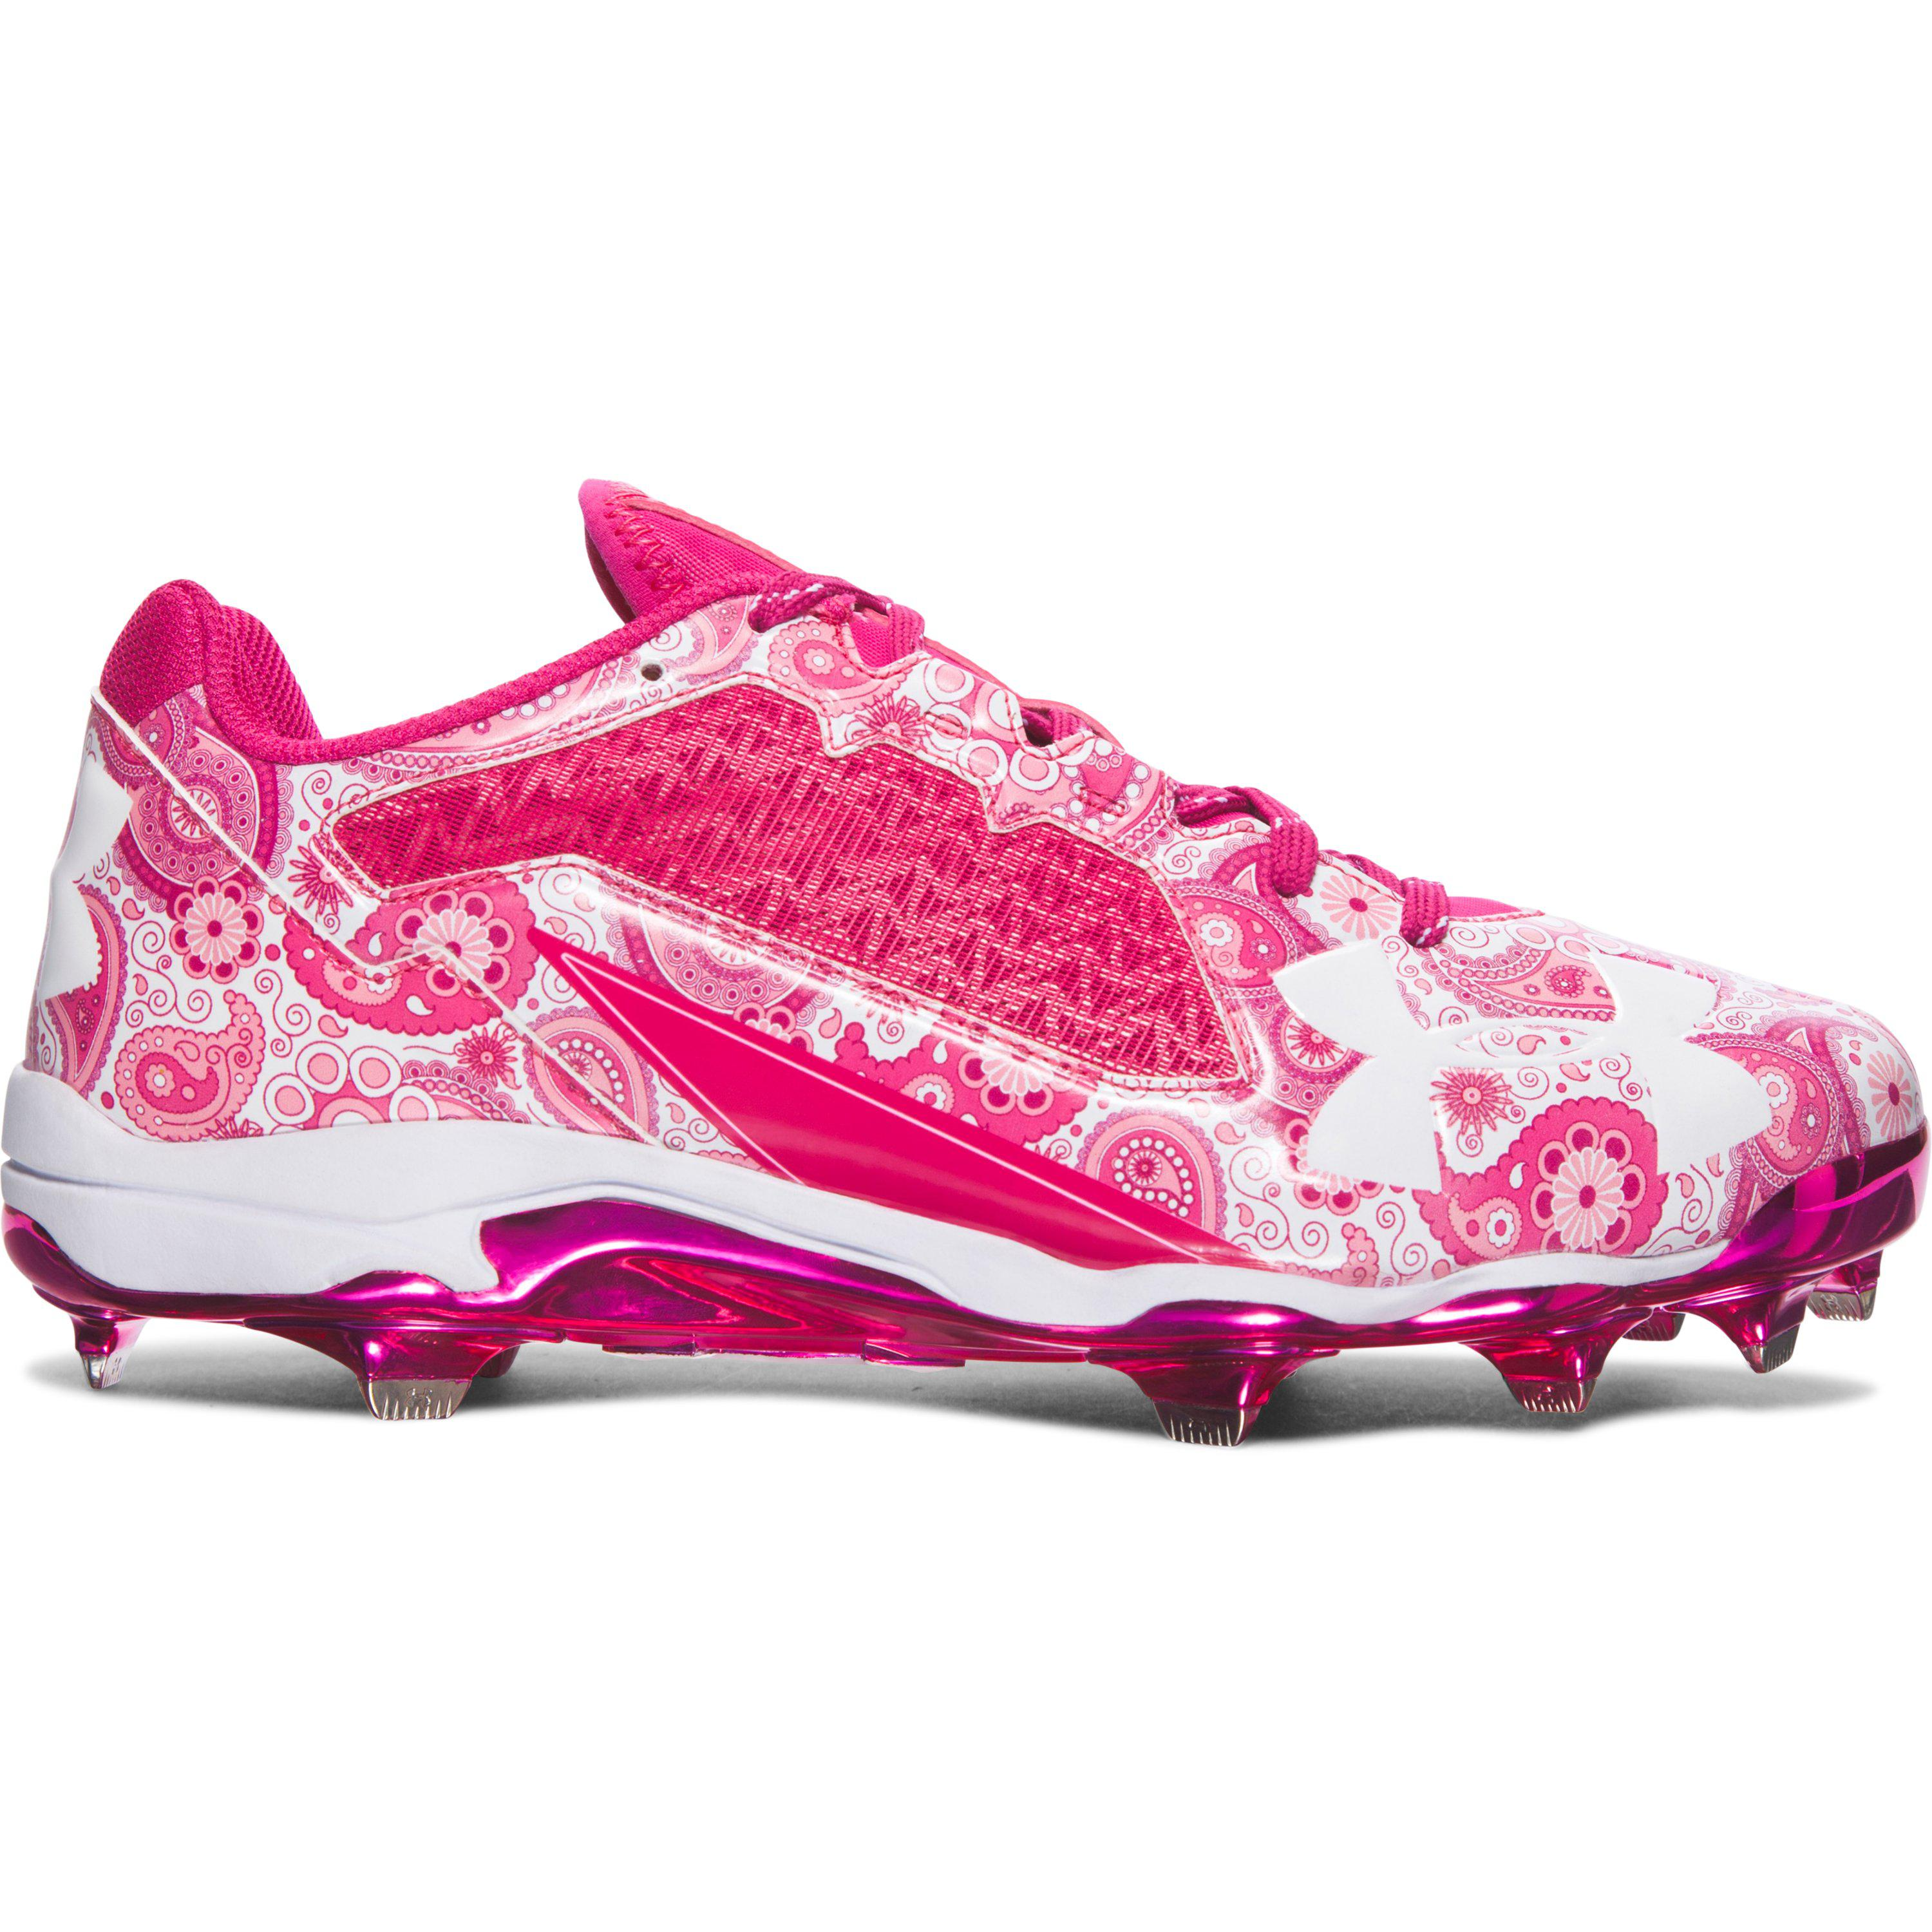 promo code 3fa5c 2b3ef pink under armour baseball cleats for mother s day